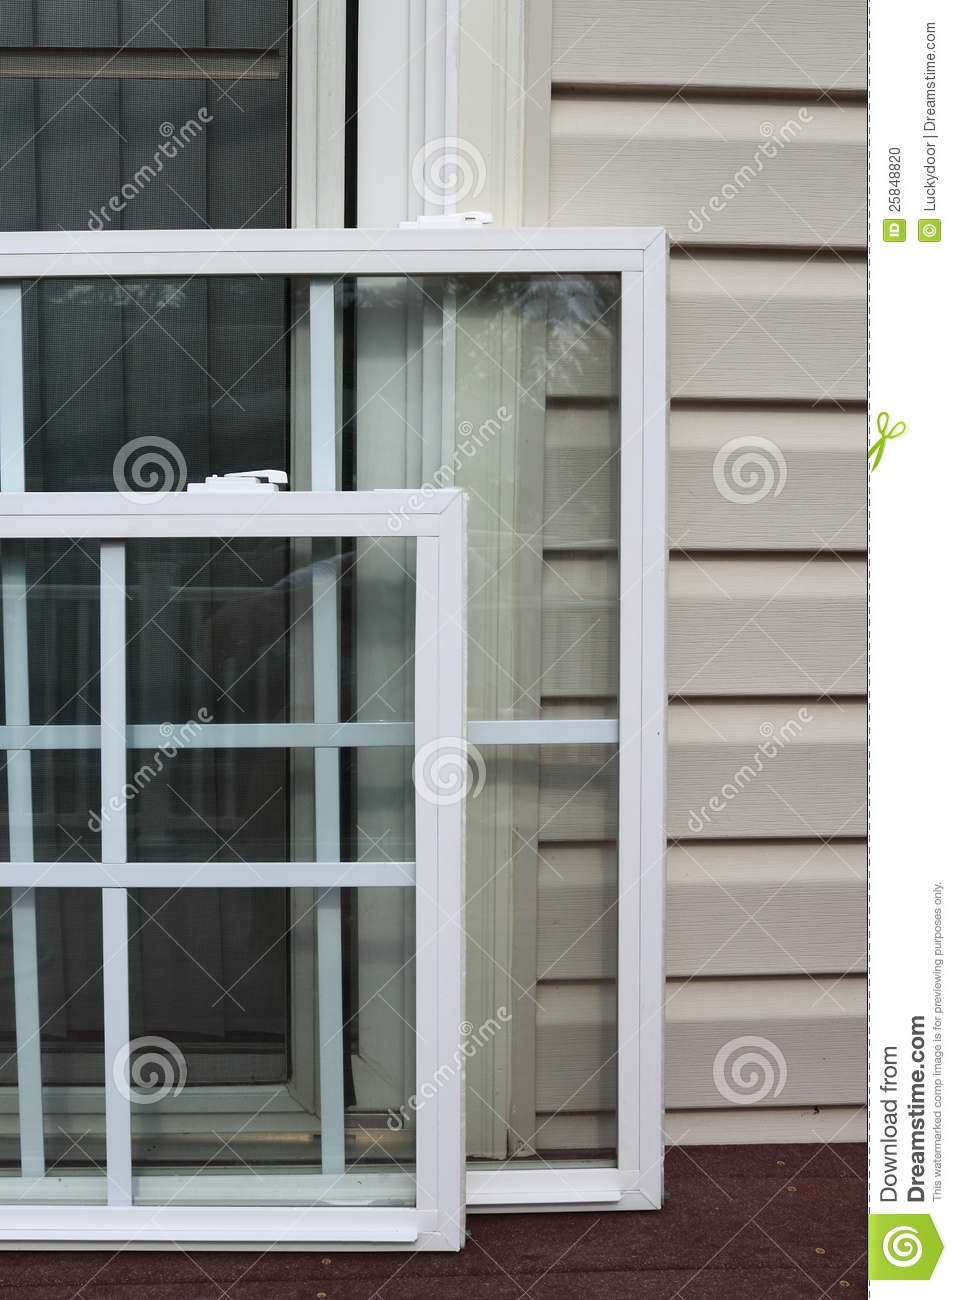 Energy efficient windows stock photo image 25848820 - The basics about energy efficient windows ...